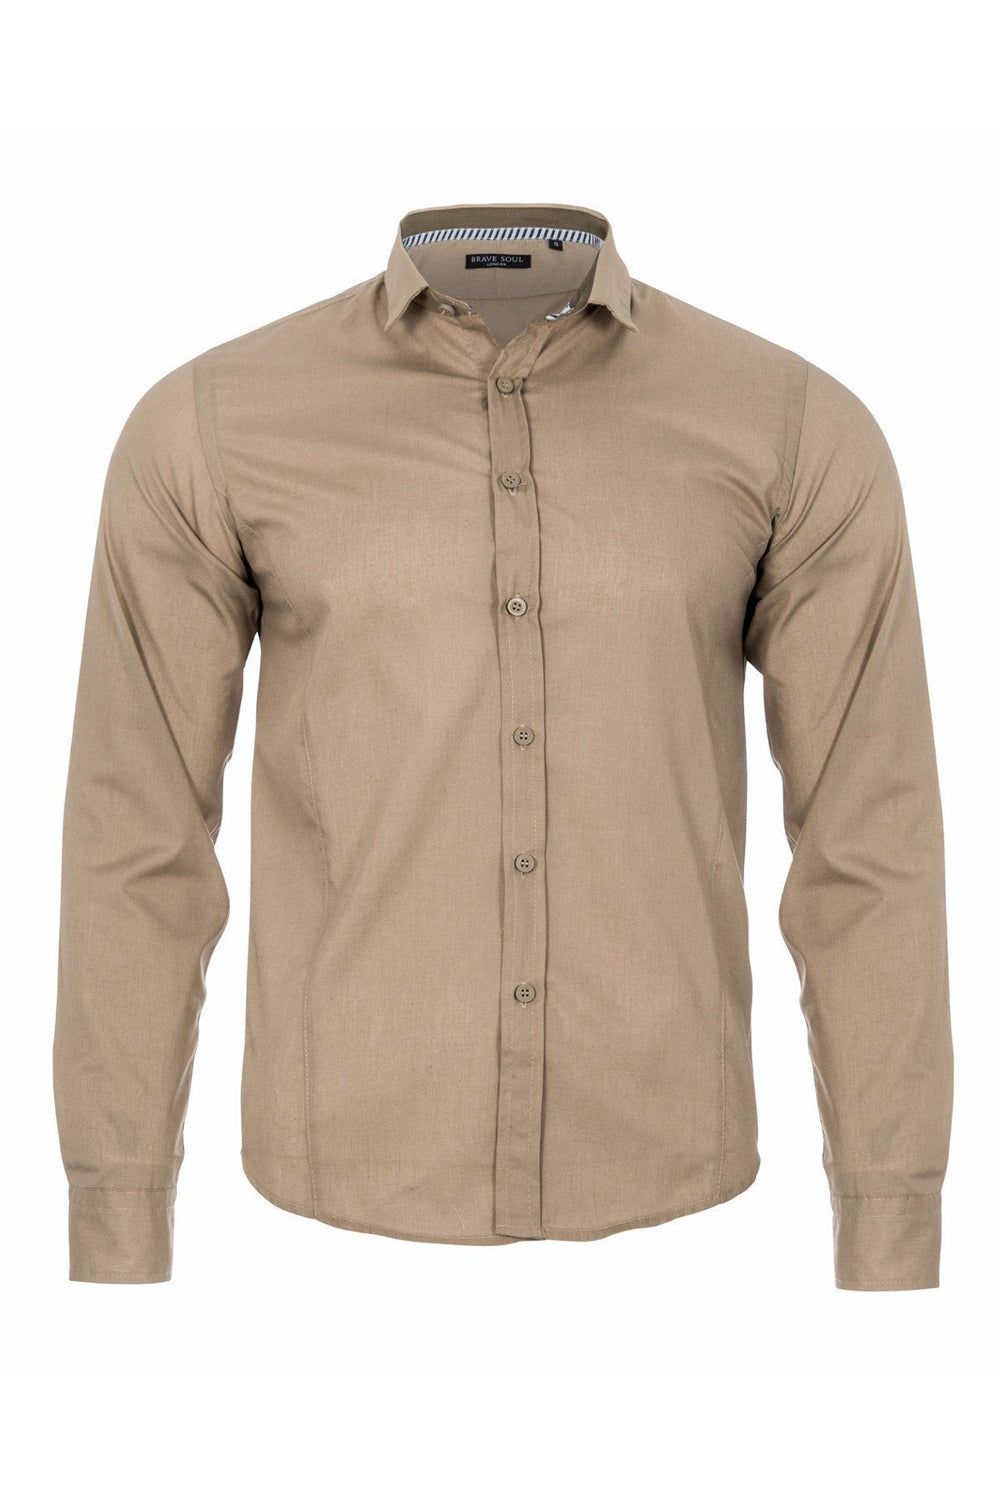 Shirts - Basic Fitted Shirt Stone